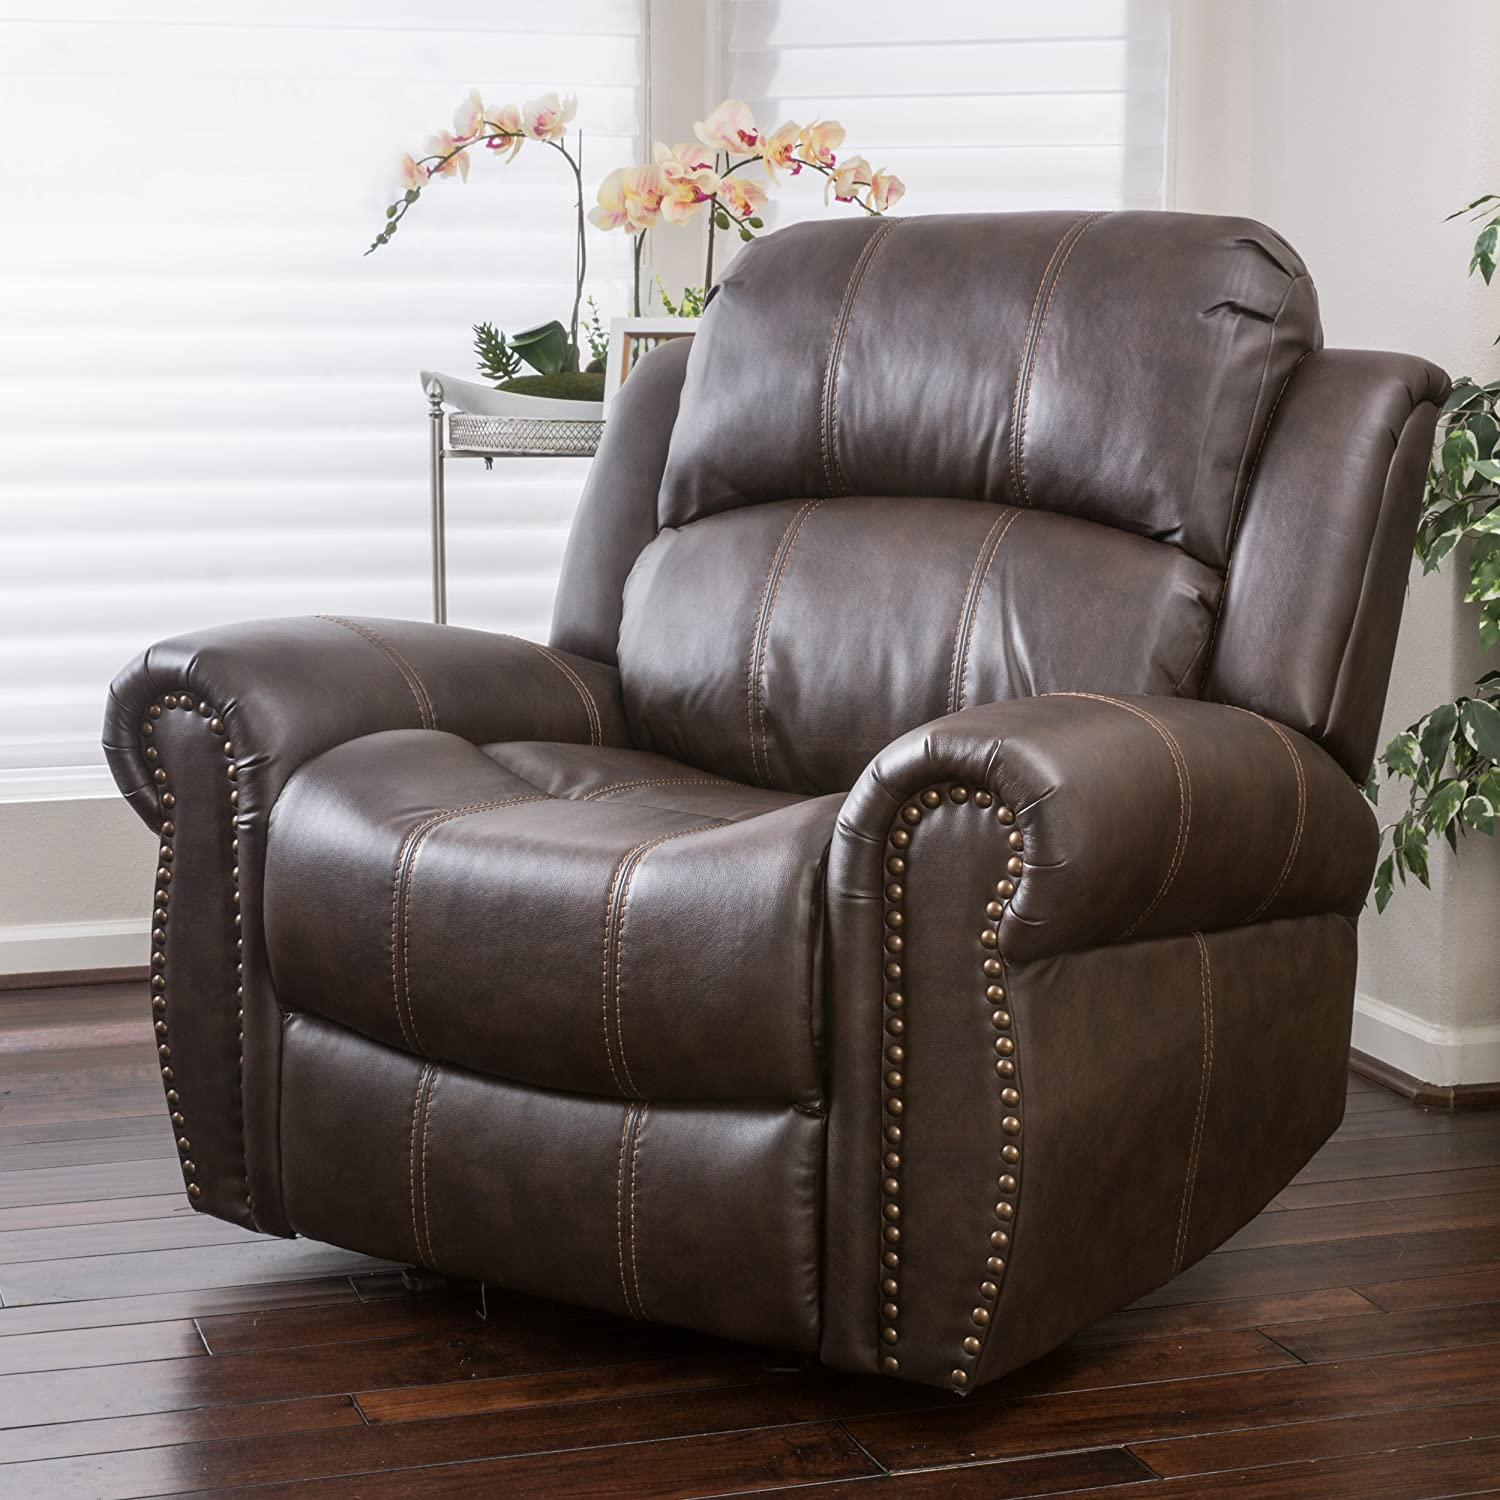 Christopher Knight Home 296466 Harbor Brown Leather Glider Recliner Club Chair,